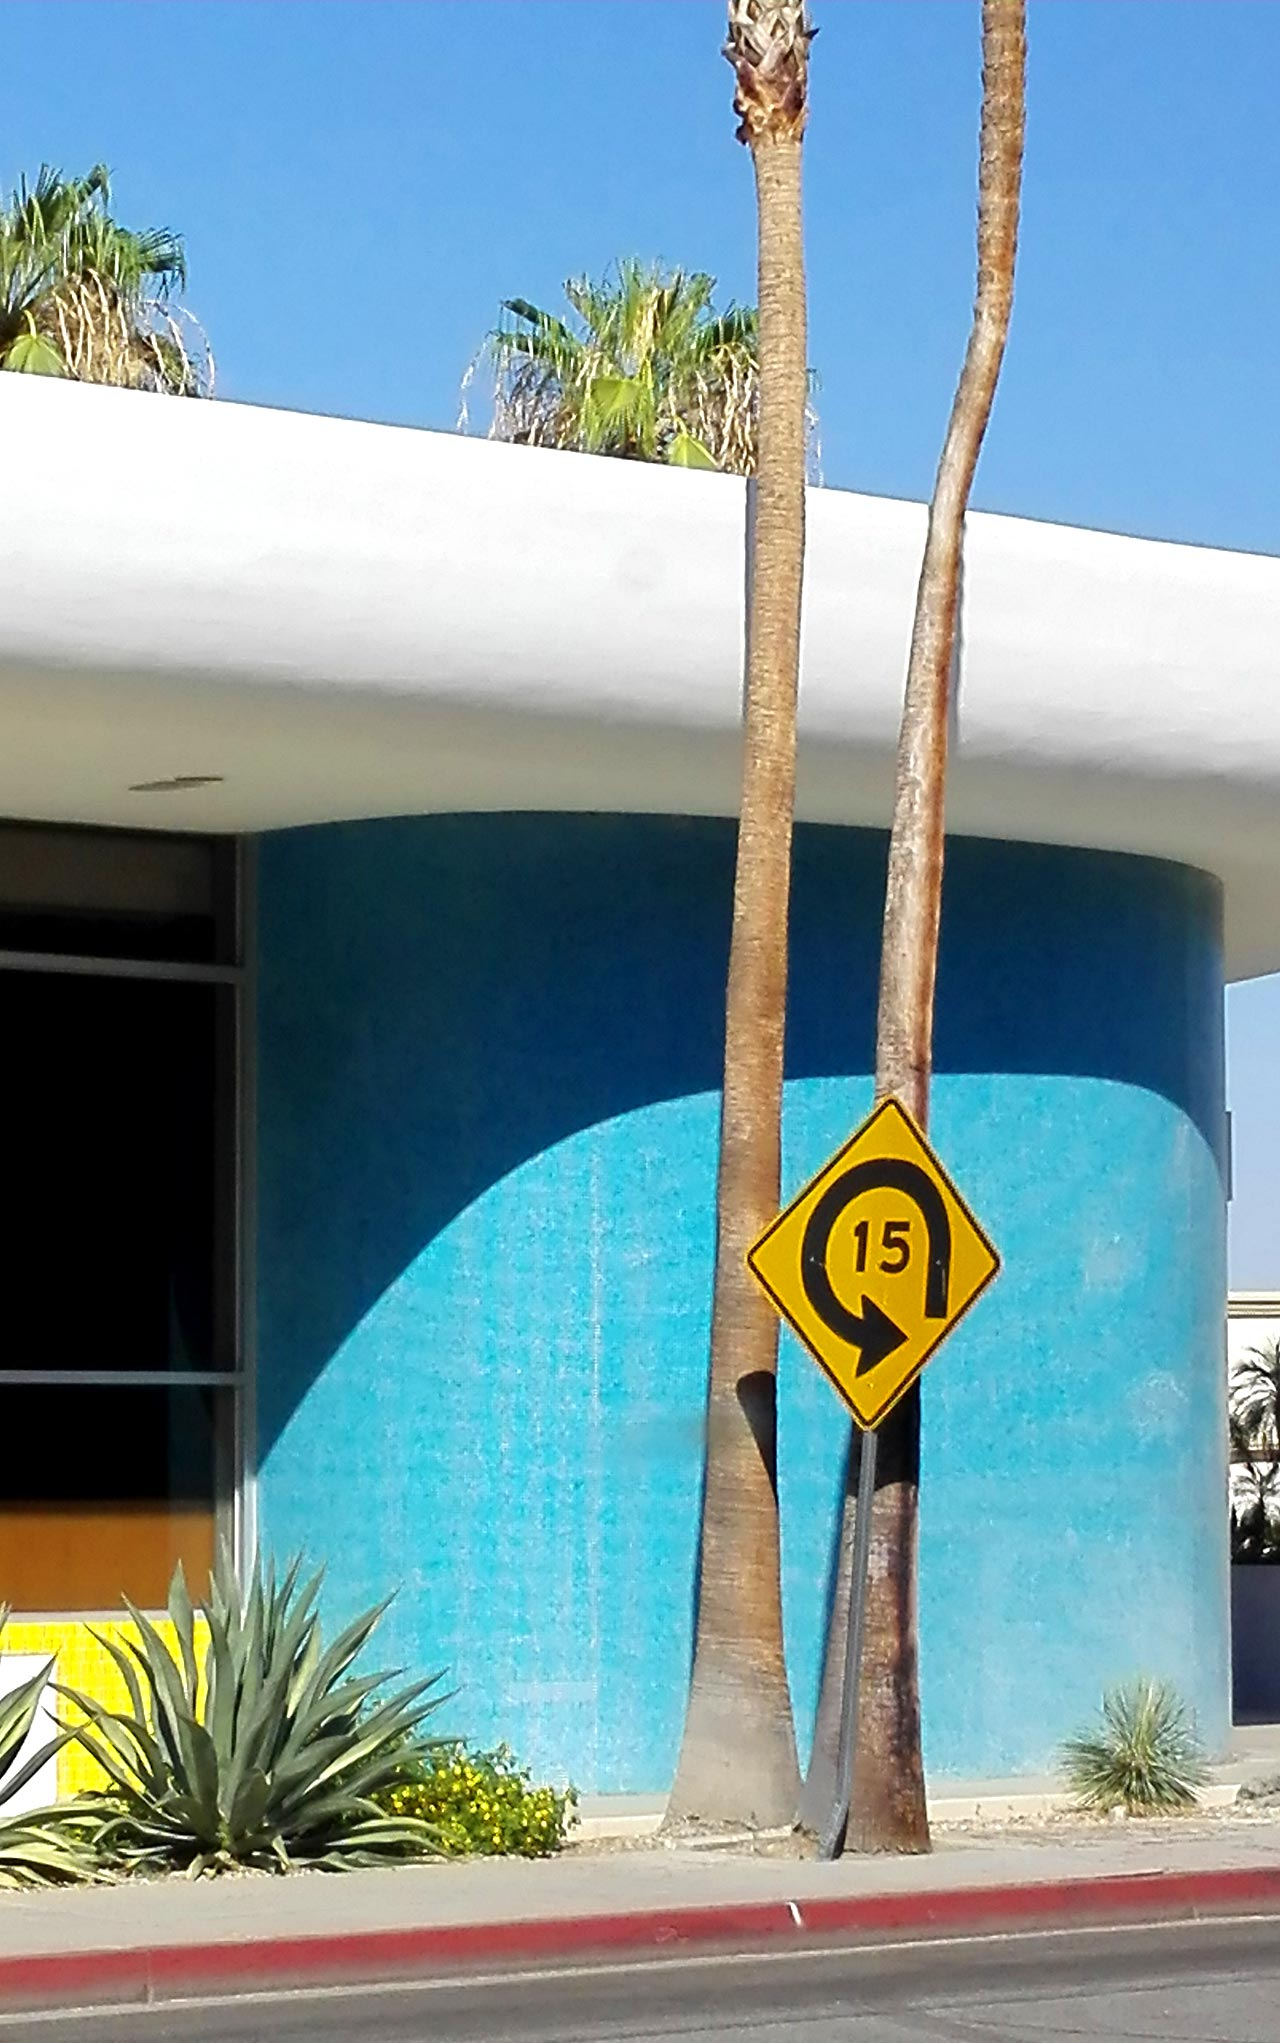 Bank-Palmsprings-Bauhaus